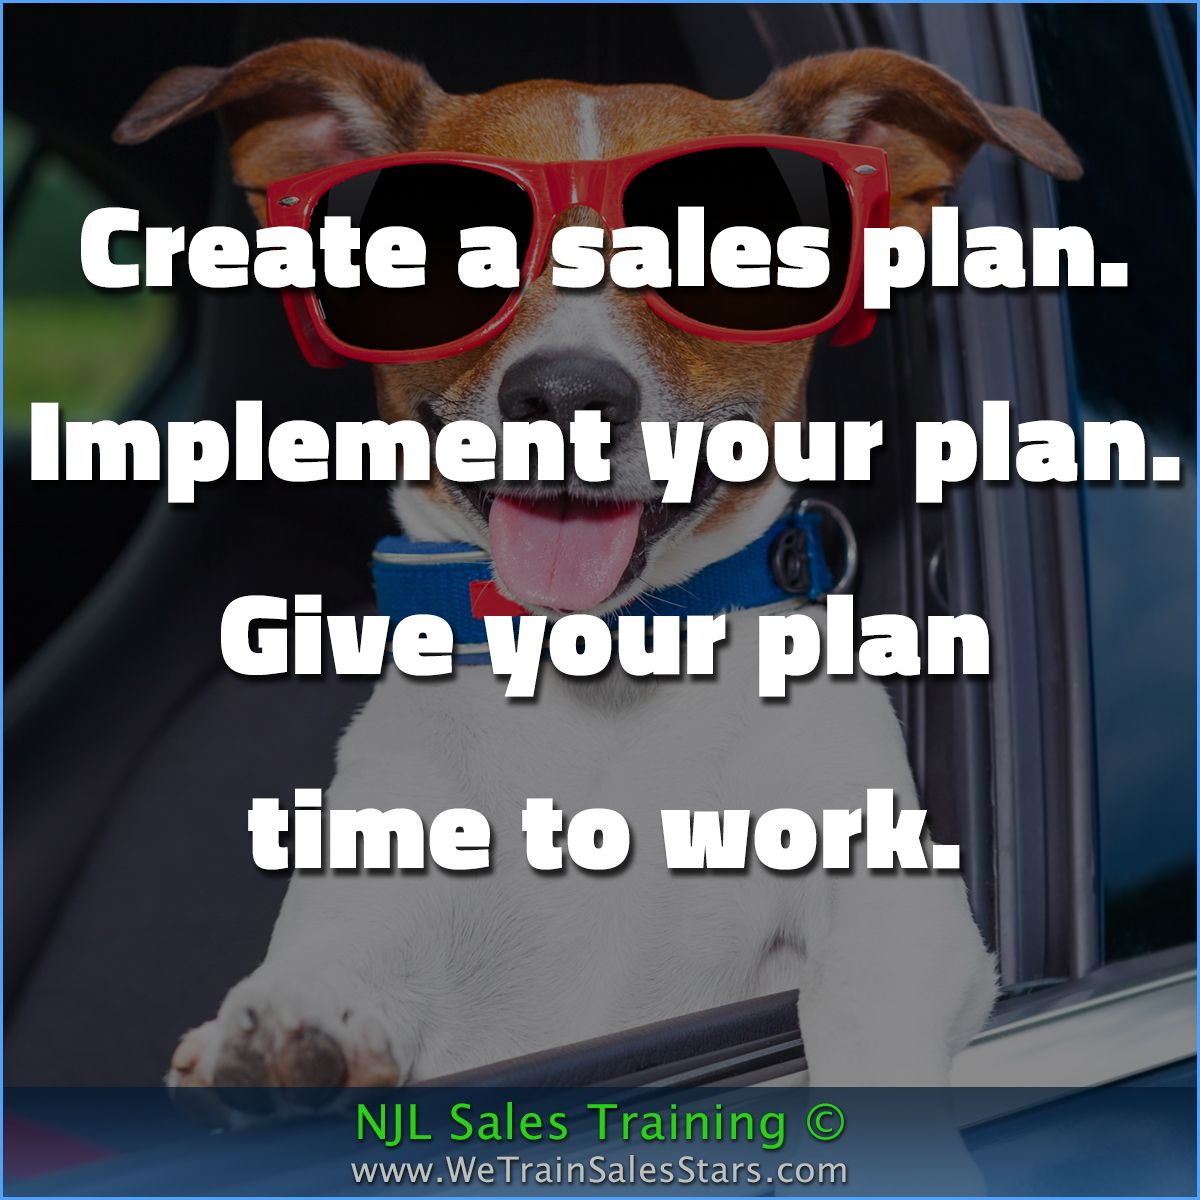 Create A Sales Plan Implement Your Plan Give Your Plan Time To